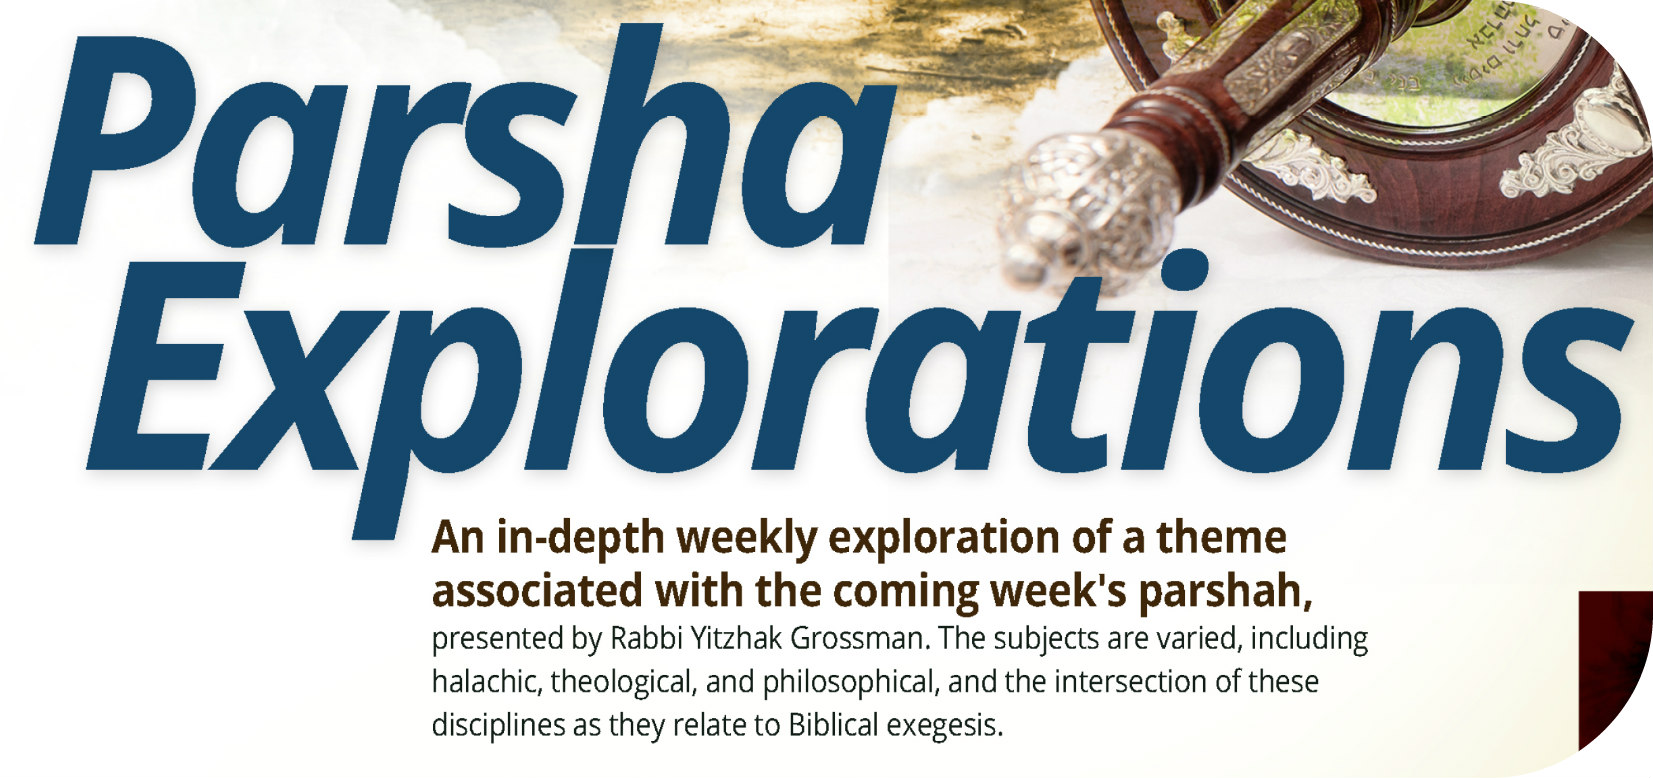 Parsha Explorations